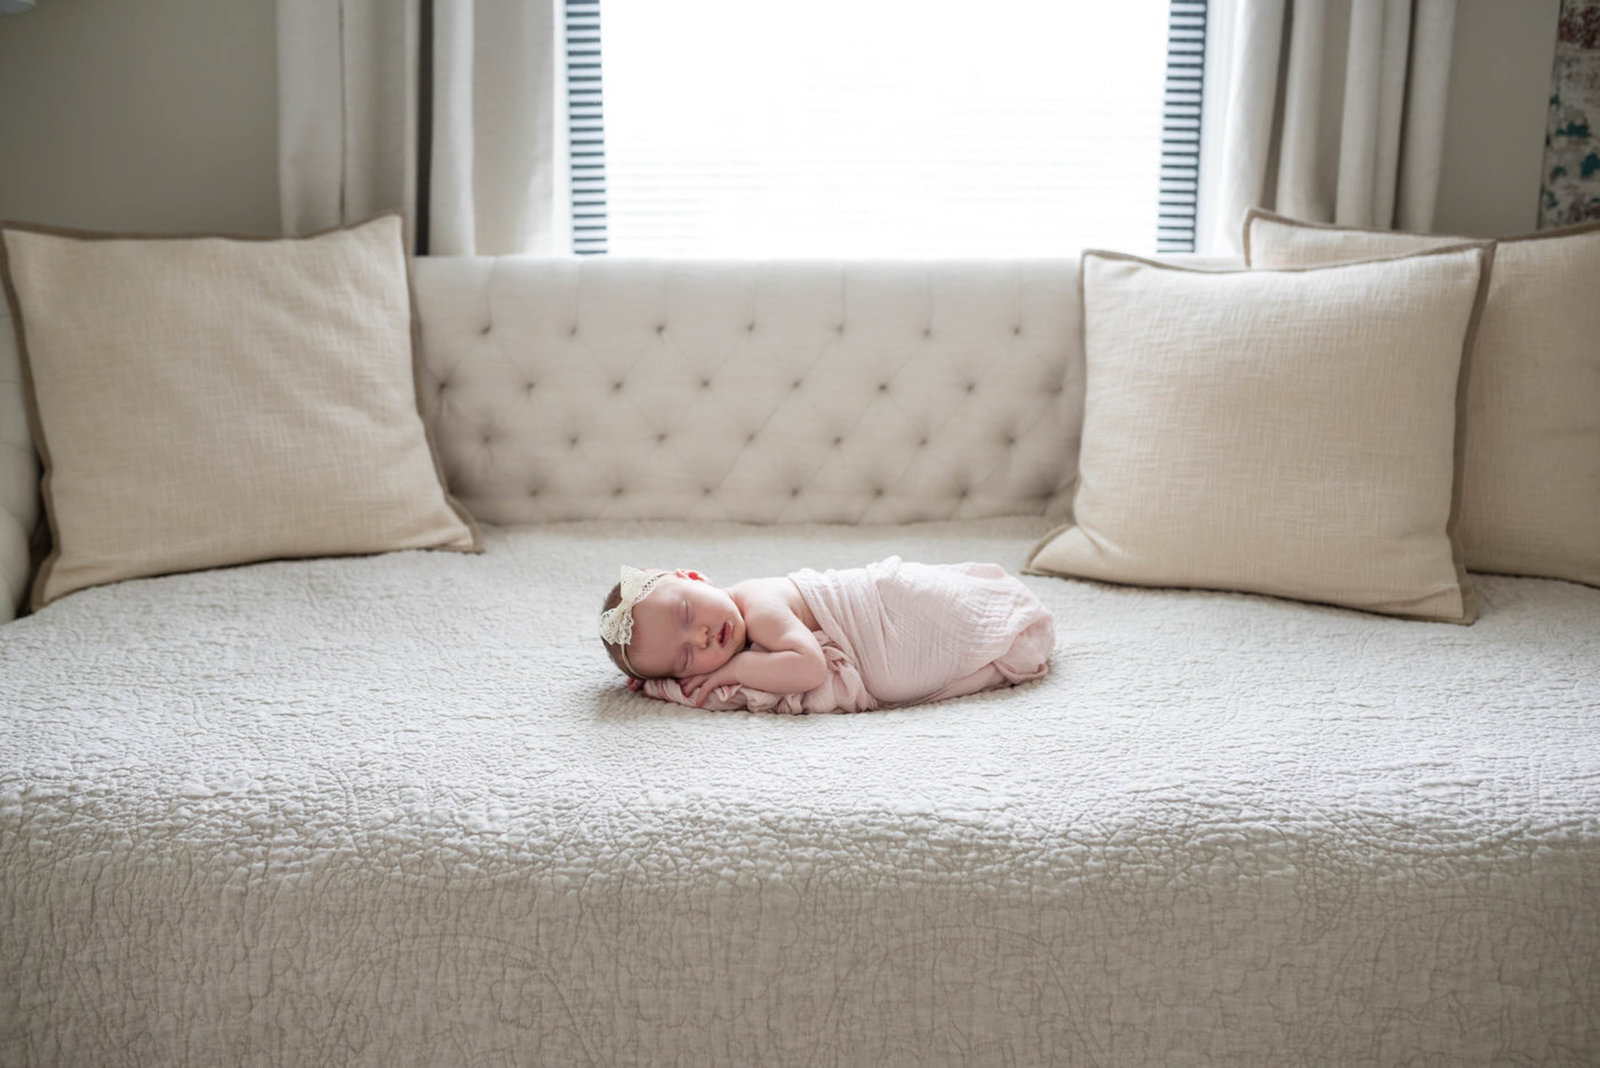 Boston-Newborn-Photographer-Lifestyle-Documentary-Home-Styled-Session-158